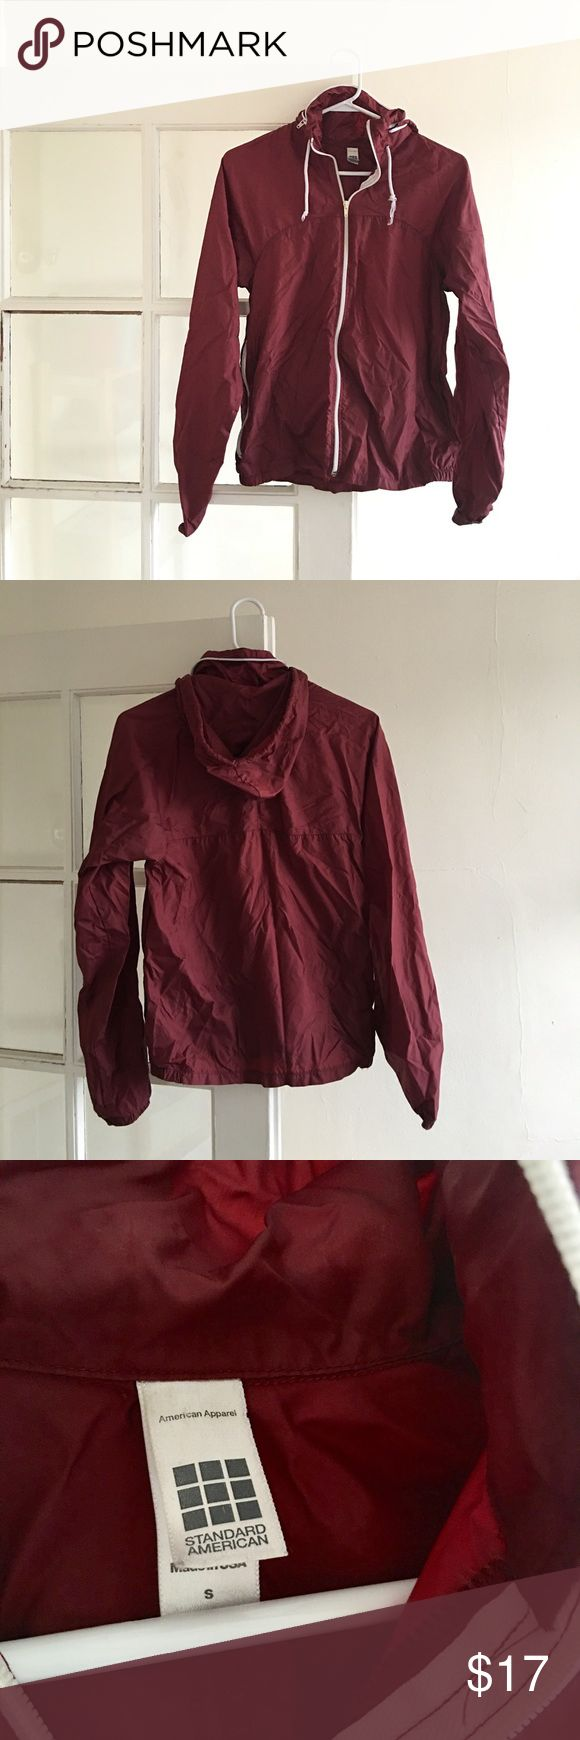 American Apparel Windbreaker American Apparel vintage burgundy windbreaker size small. 100% nylon. Very lightweight! Perfect for layering. Can also be turned into a fanny pack (snap enclosure is hidden inside the right pocket) American Apparel Jackets & Coats